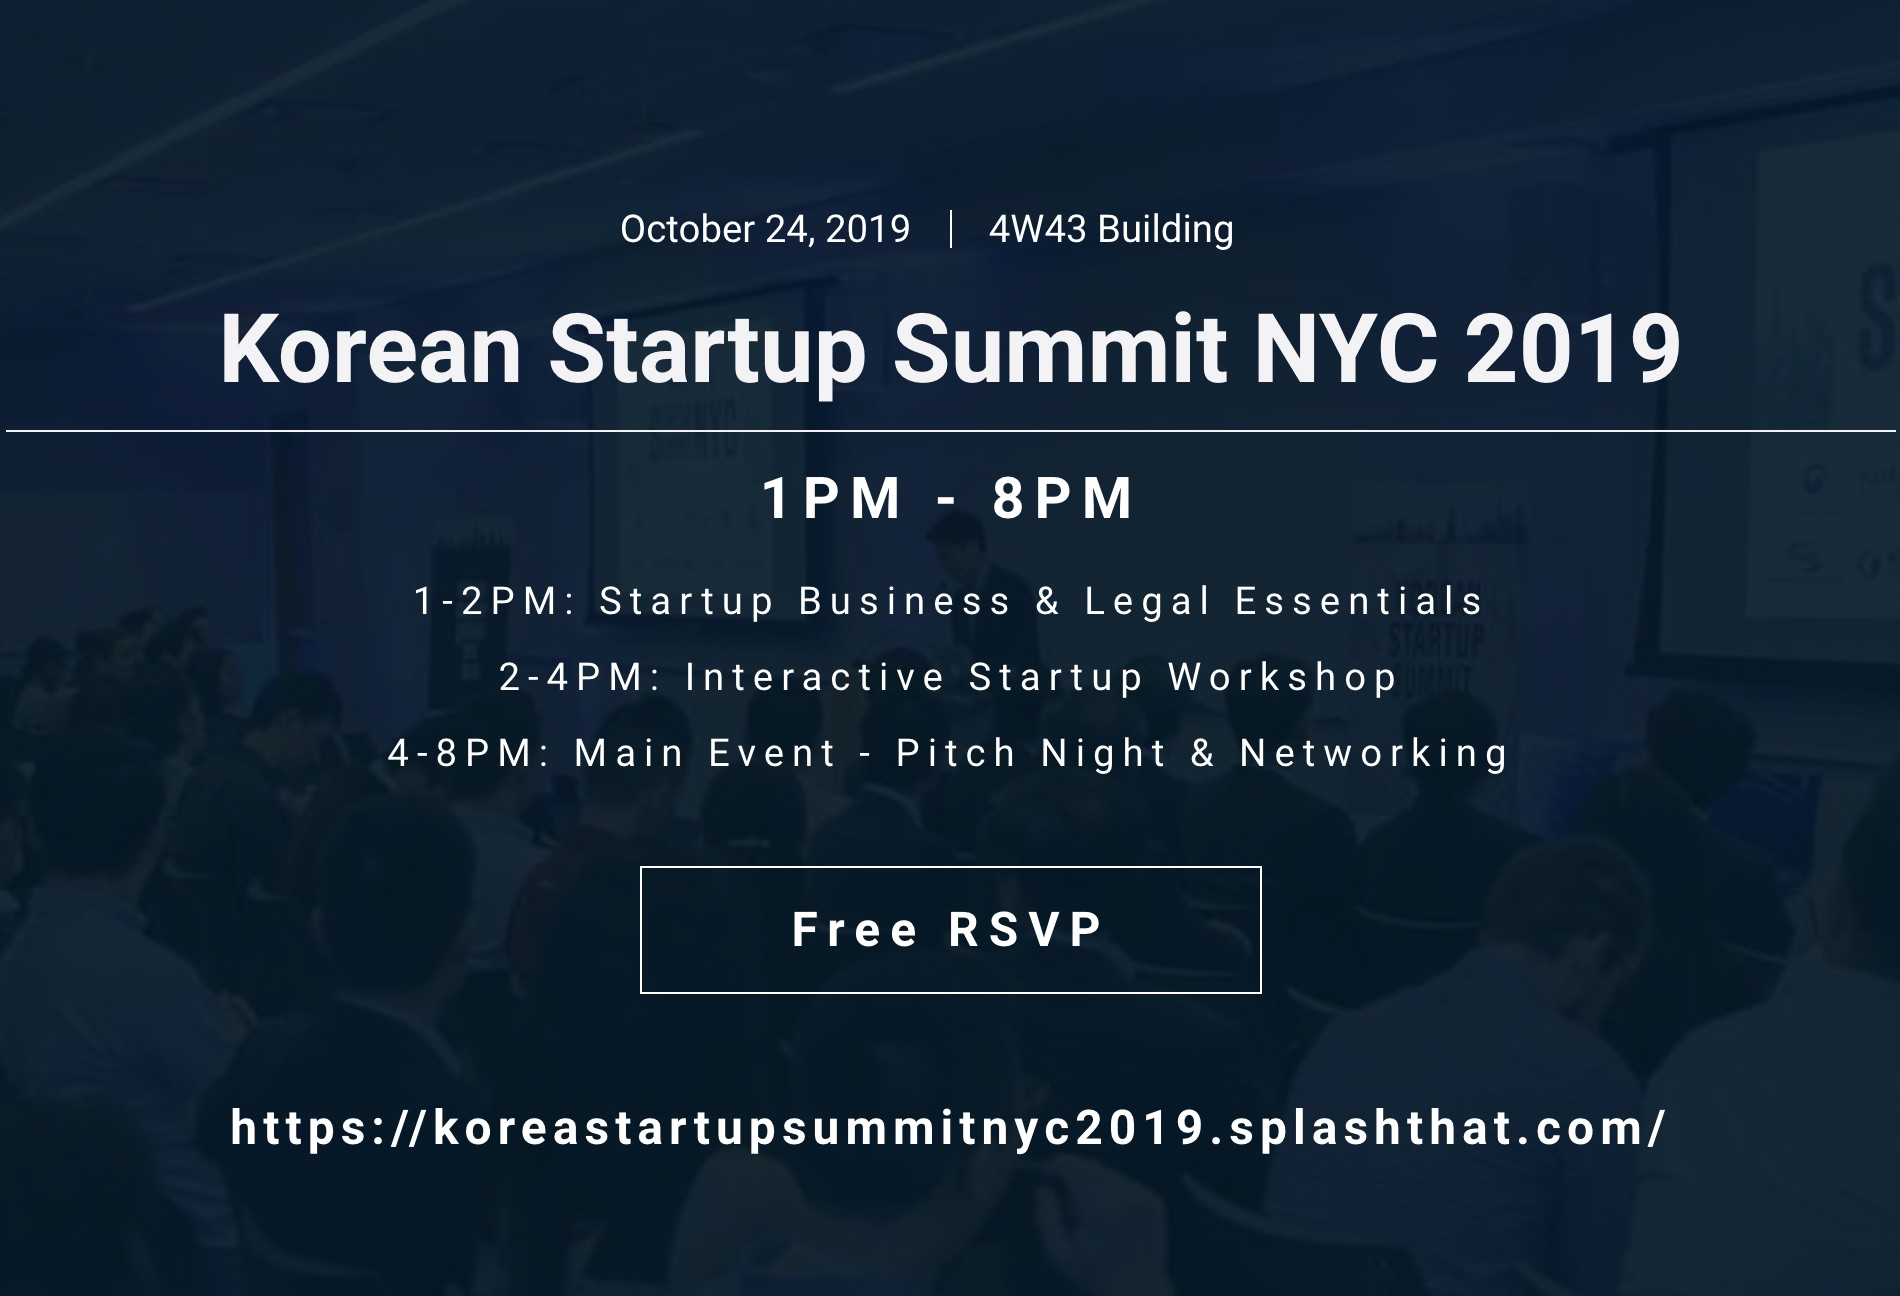 Korean Startups & Entrepreneurs (KSE) - Korean Startup Summit NYC 2019